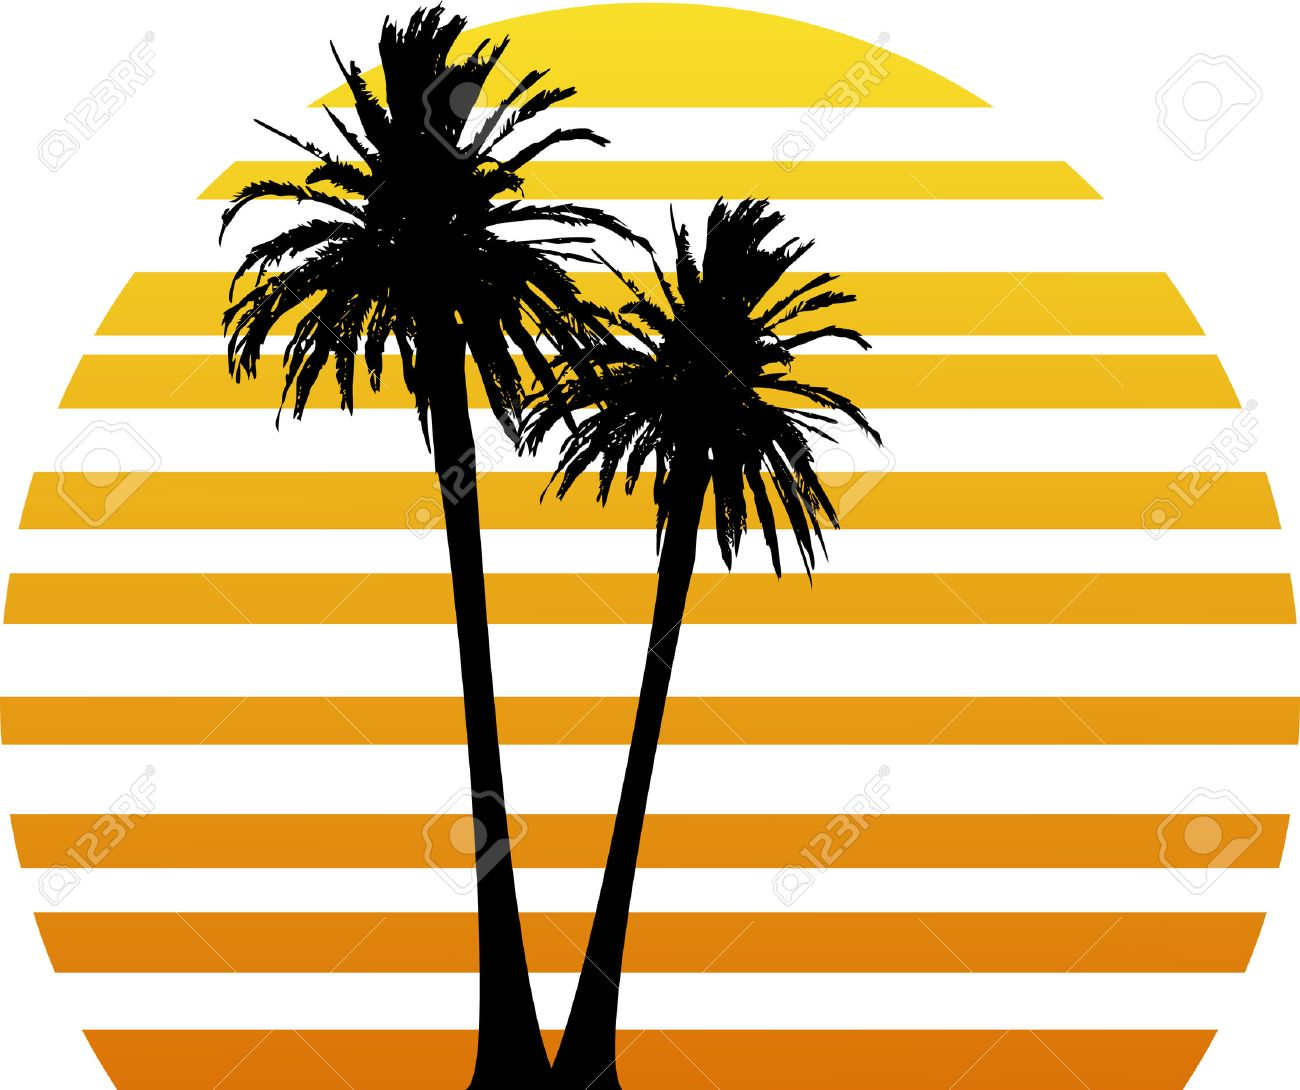 vector illustration with two palm trees and stylized sunset royalty rh 123rf com sunset clip art images sunset clip art in black & white